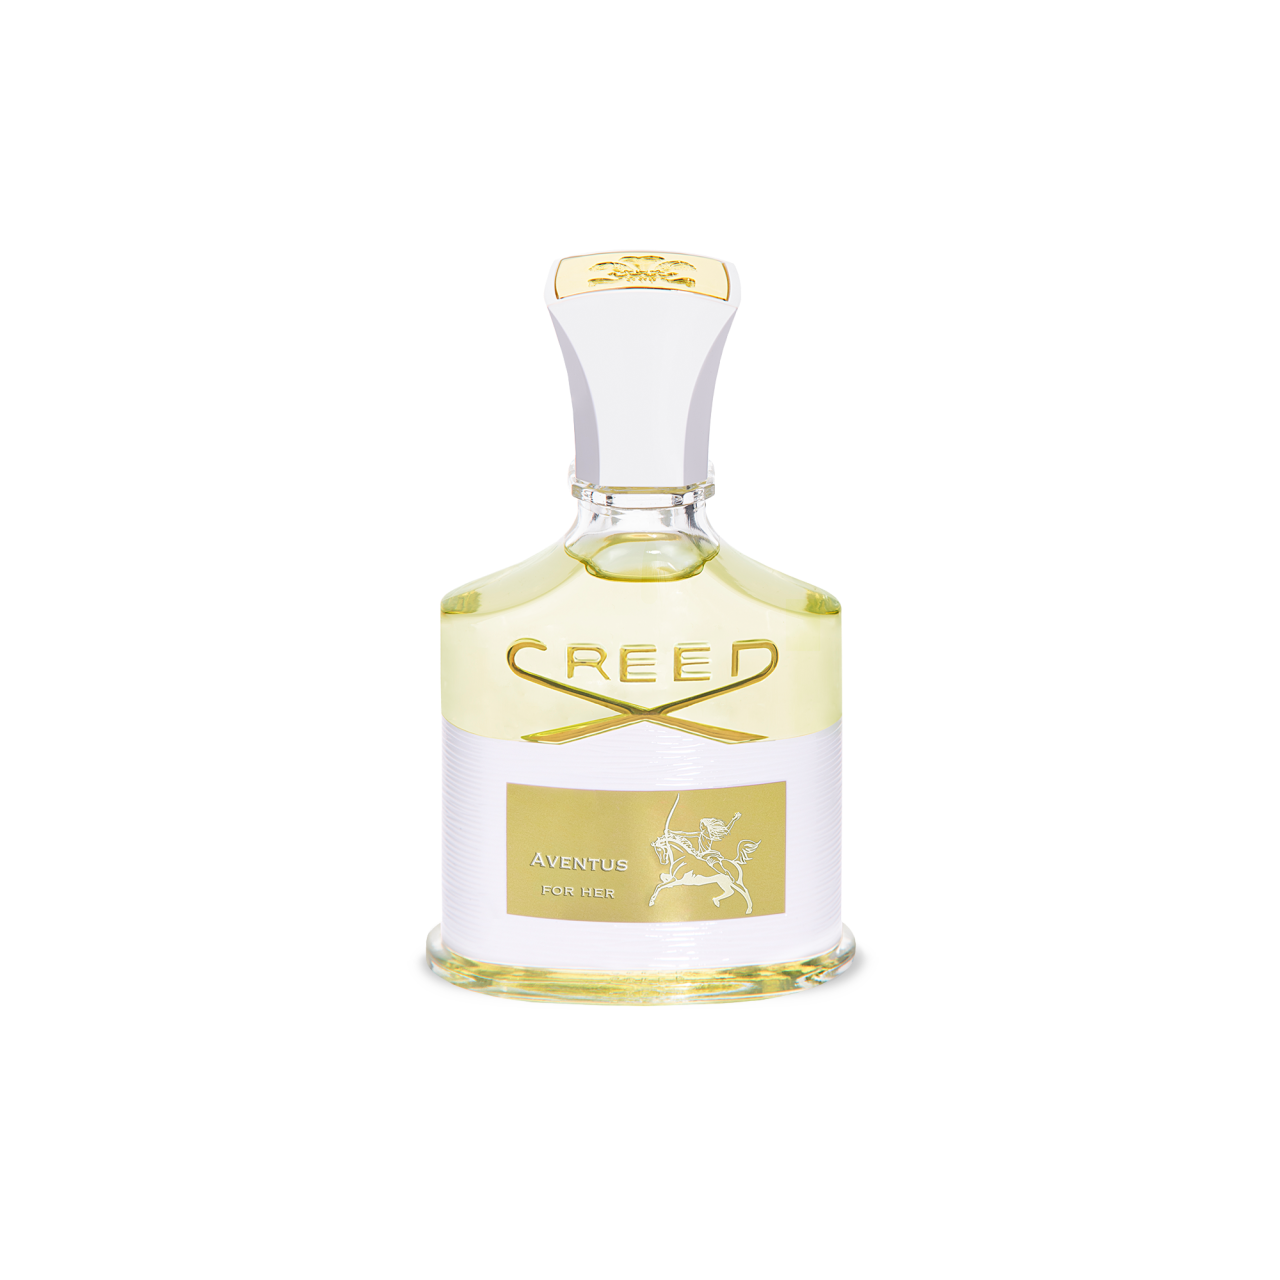 CREED AVENTUS FOR HER EDP 100ML